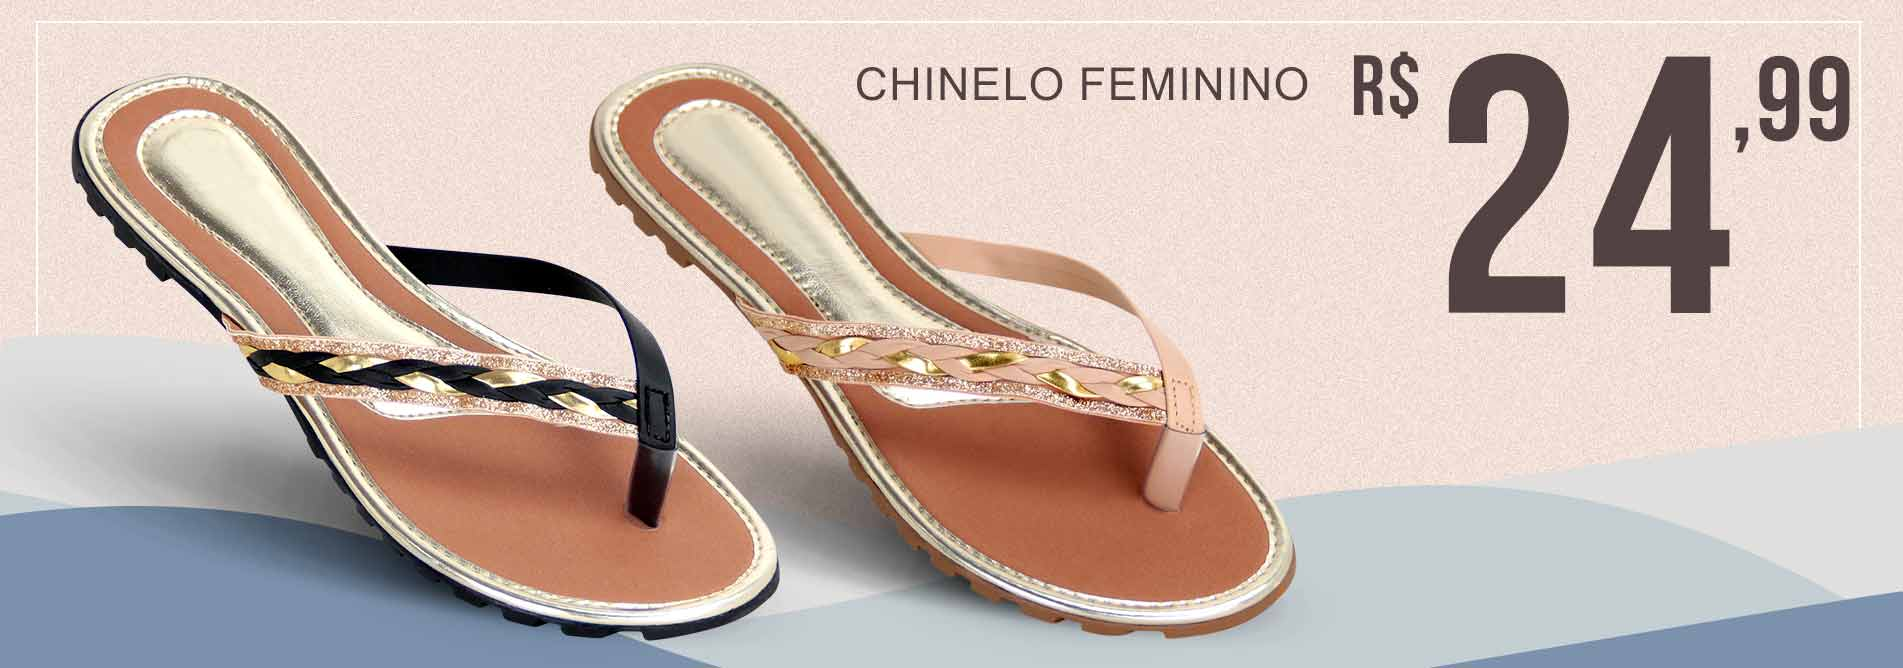 chinelo-ana-julia-490-set